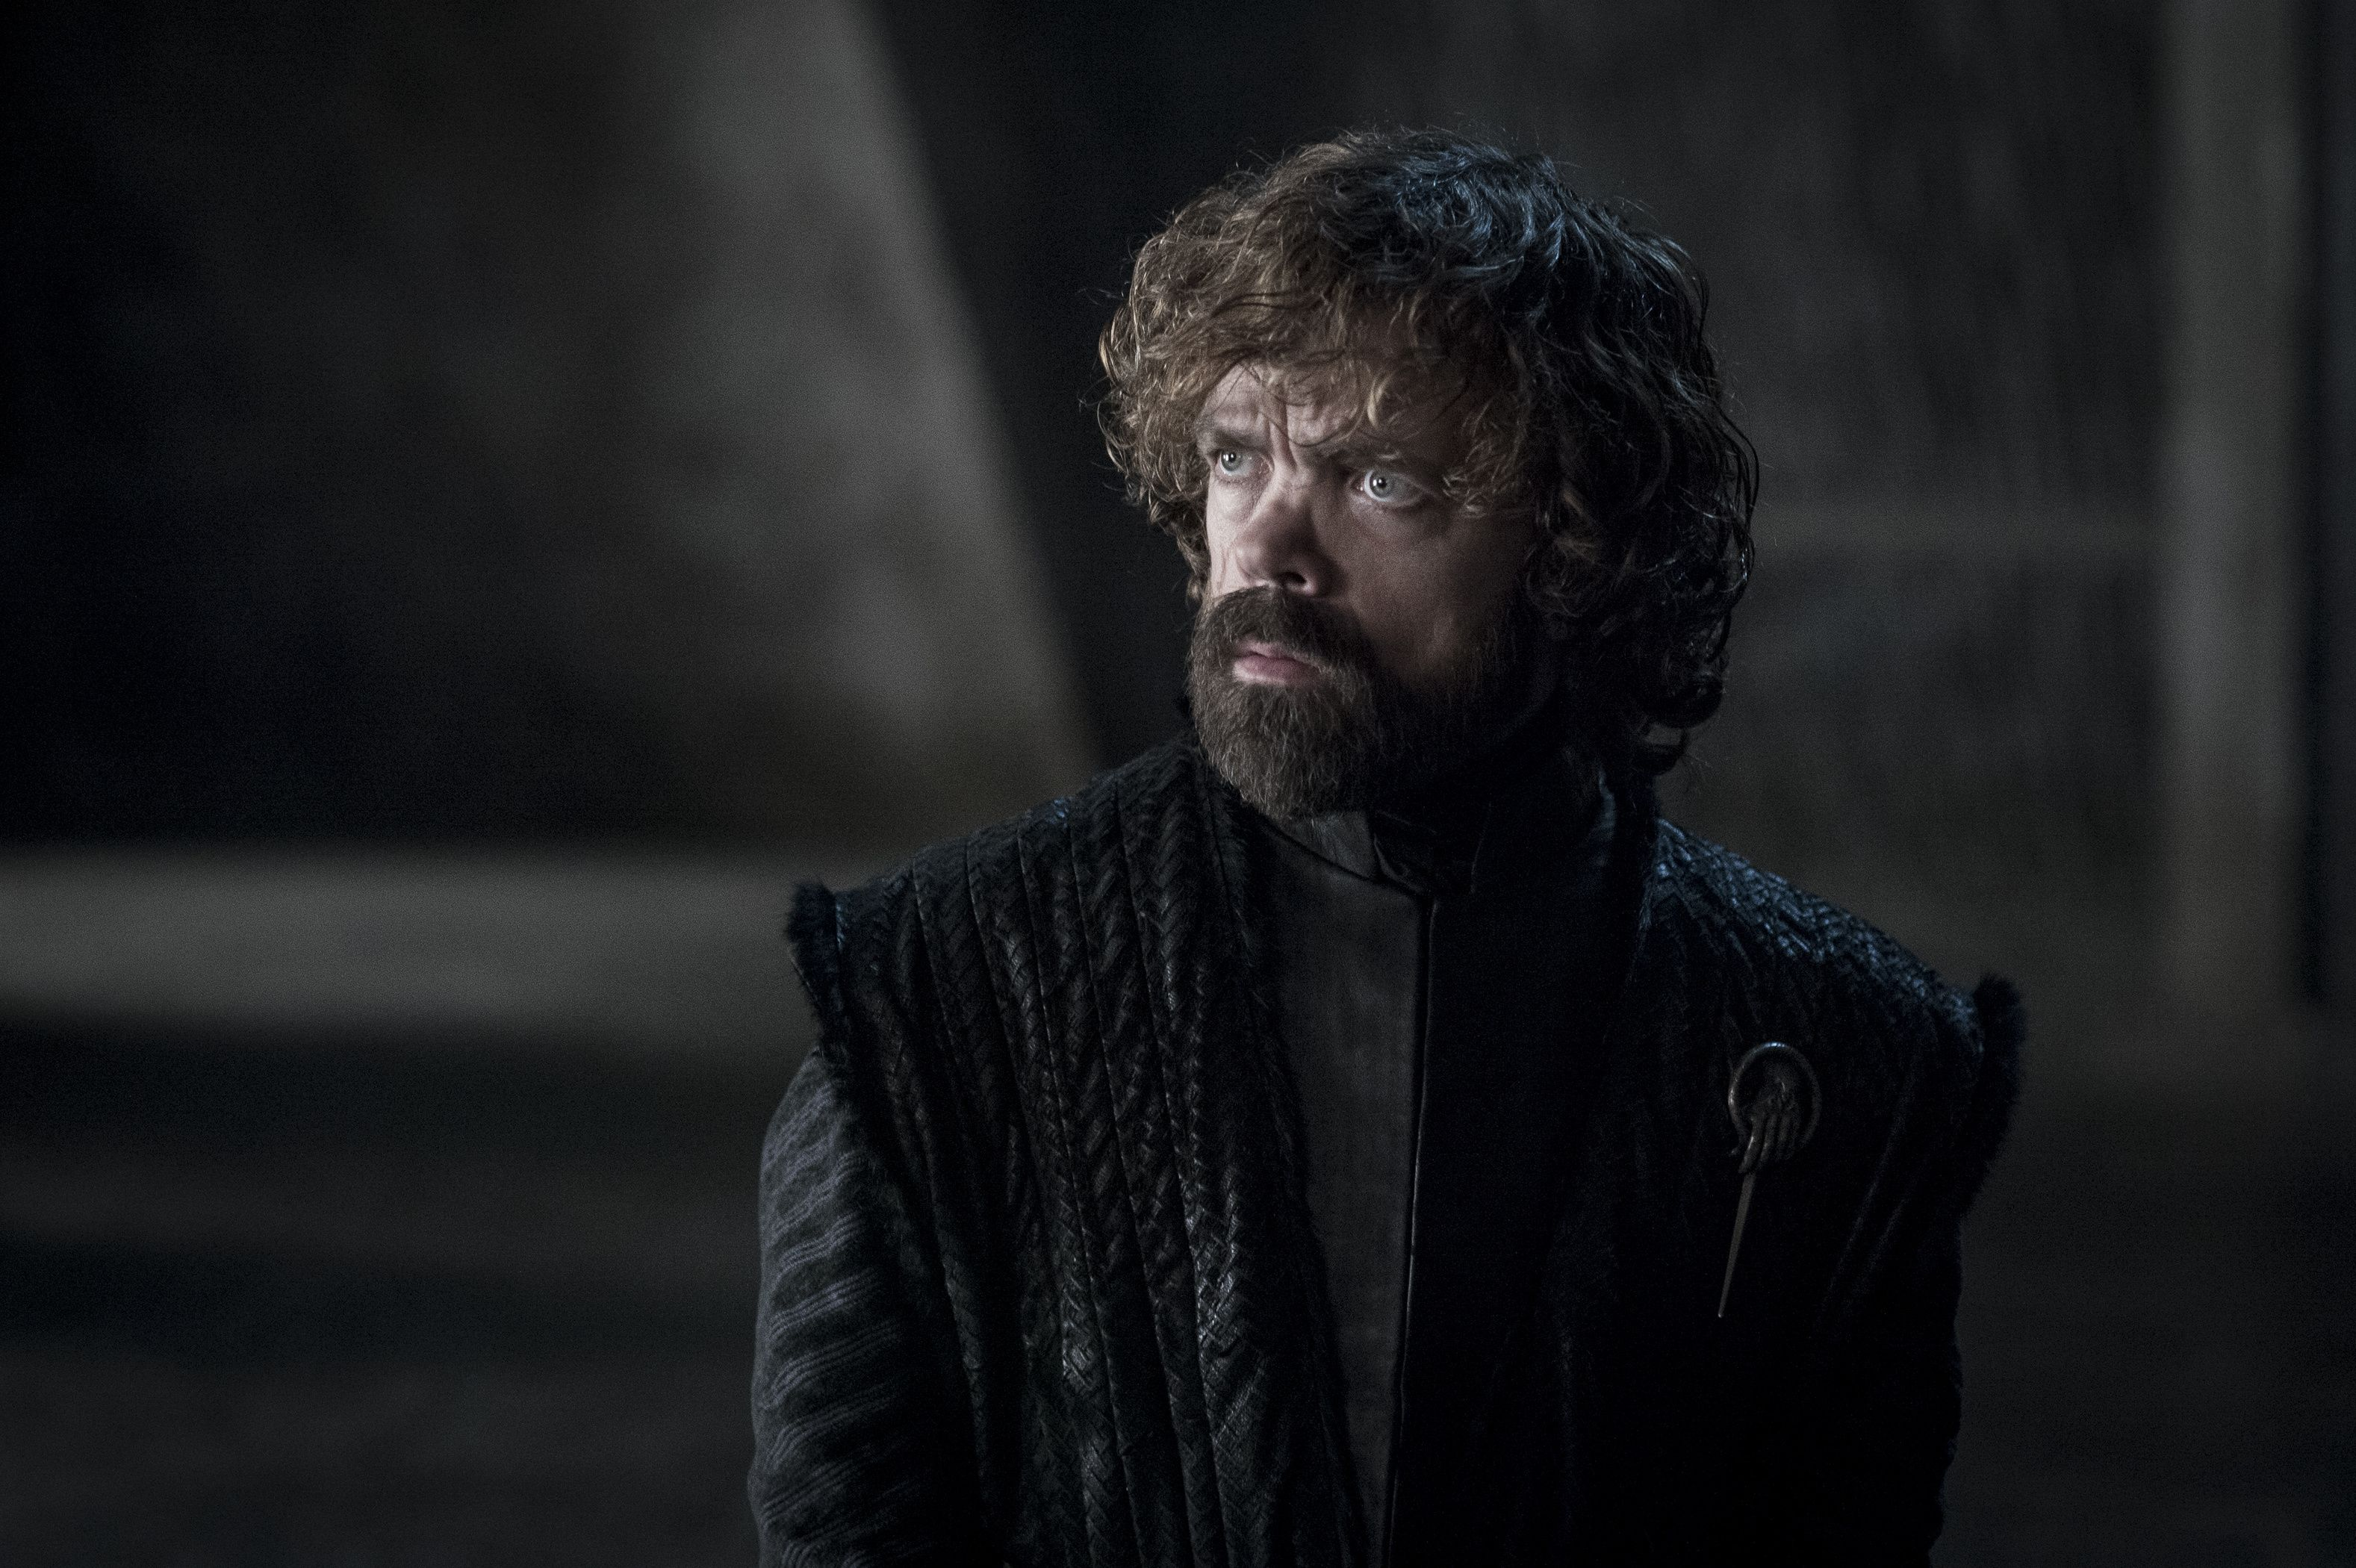 Stephen King Comments On Game Of Thrones' Final Controversial Season